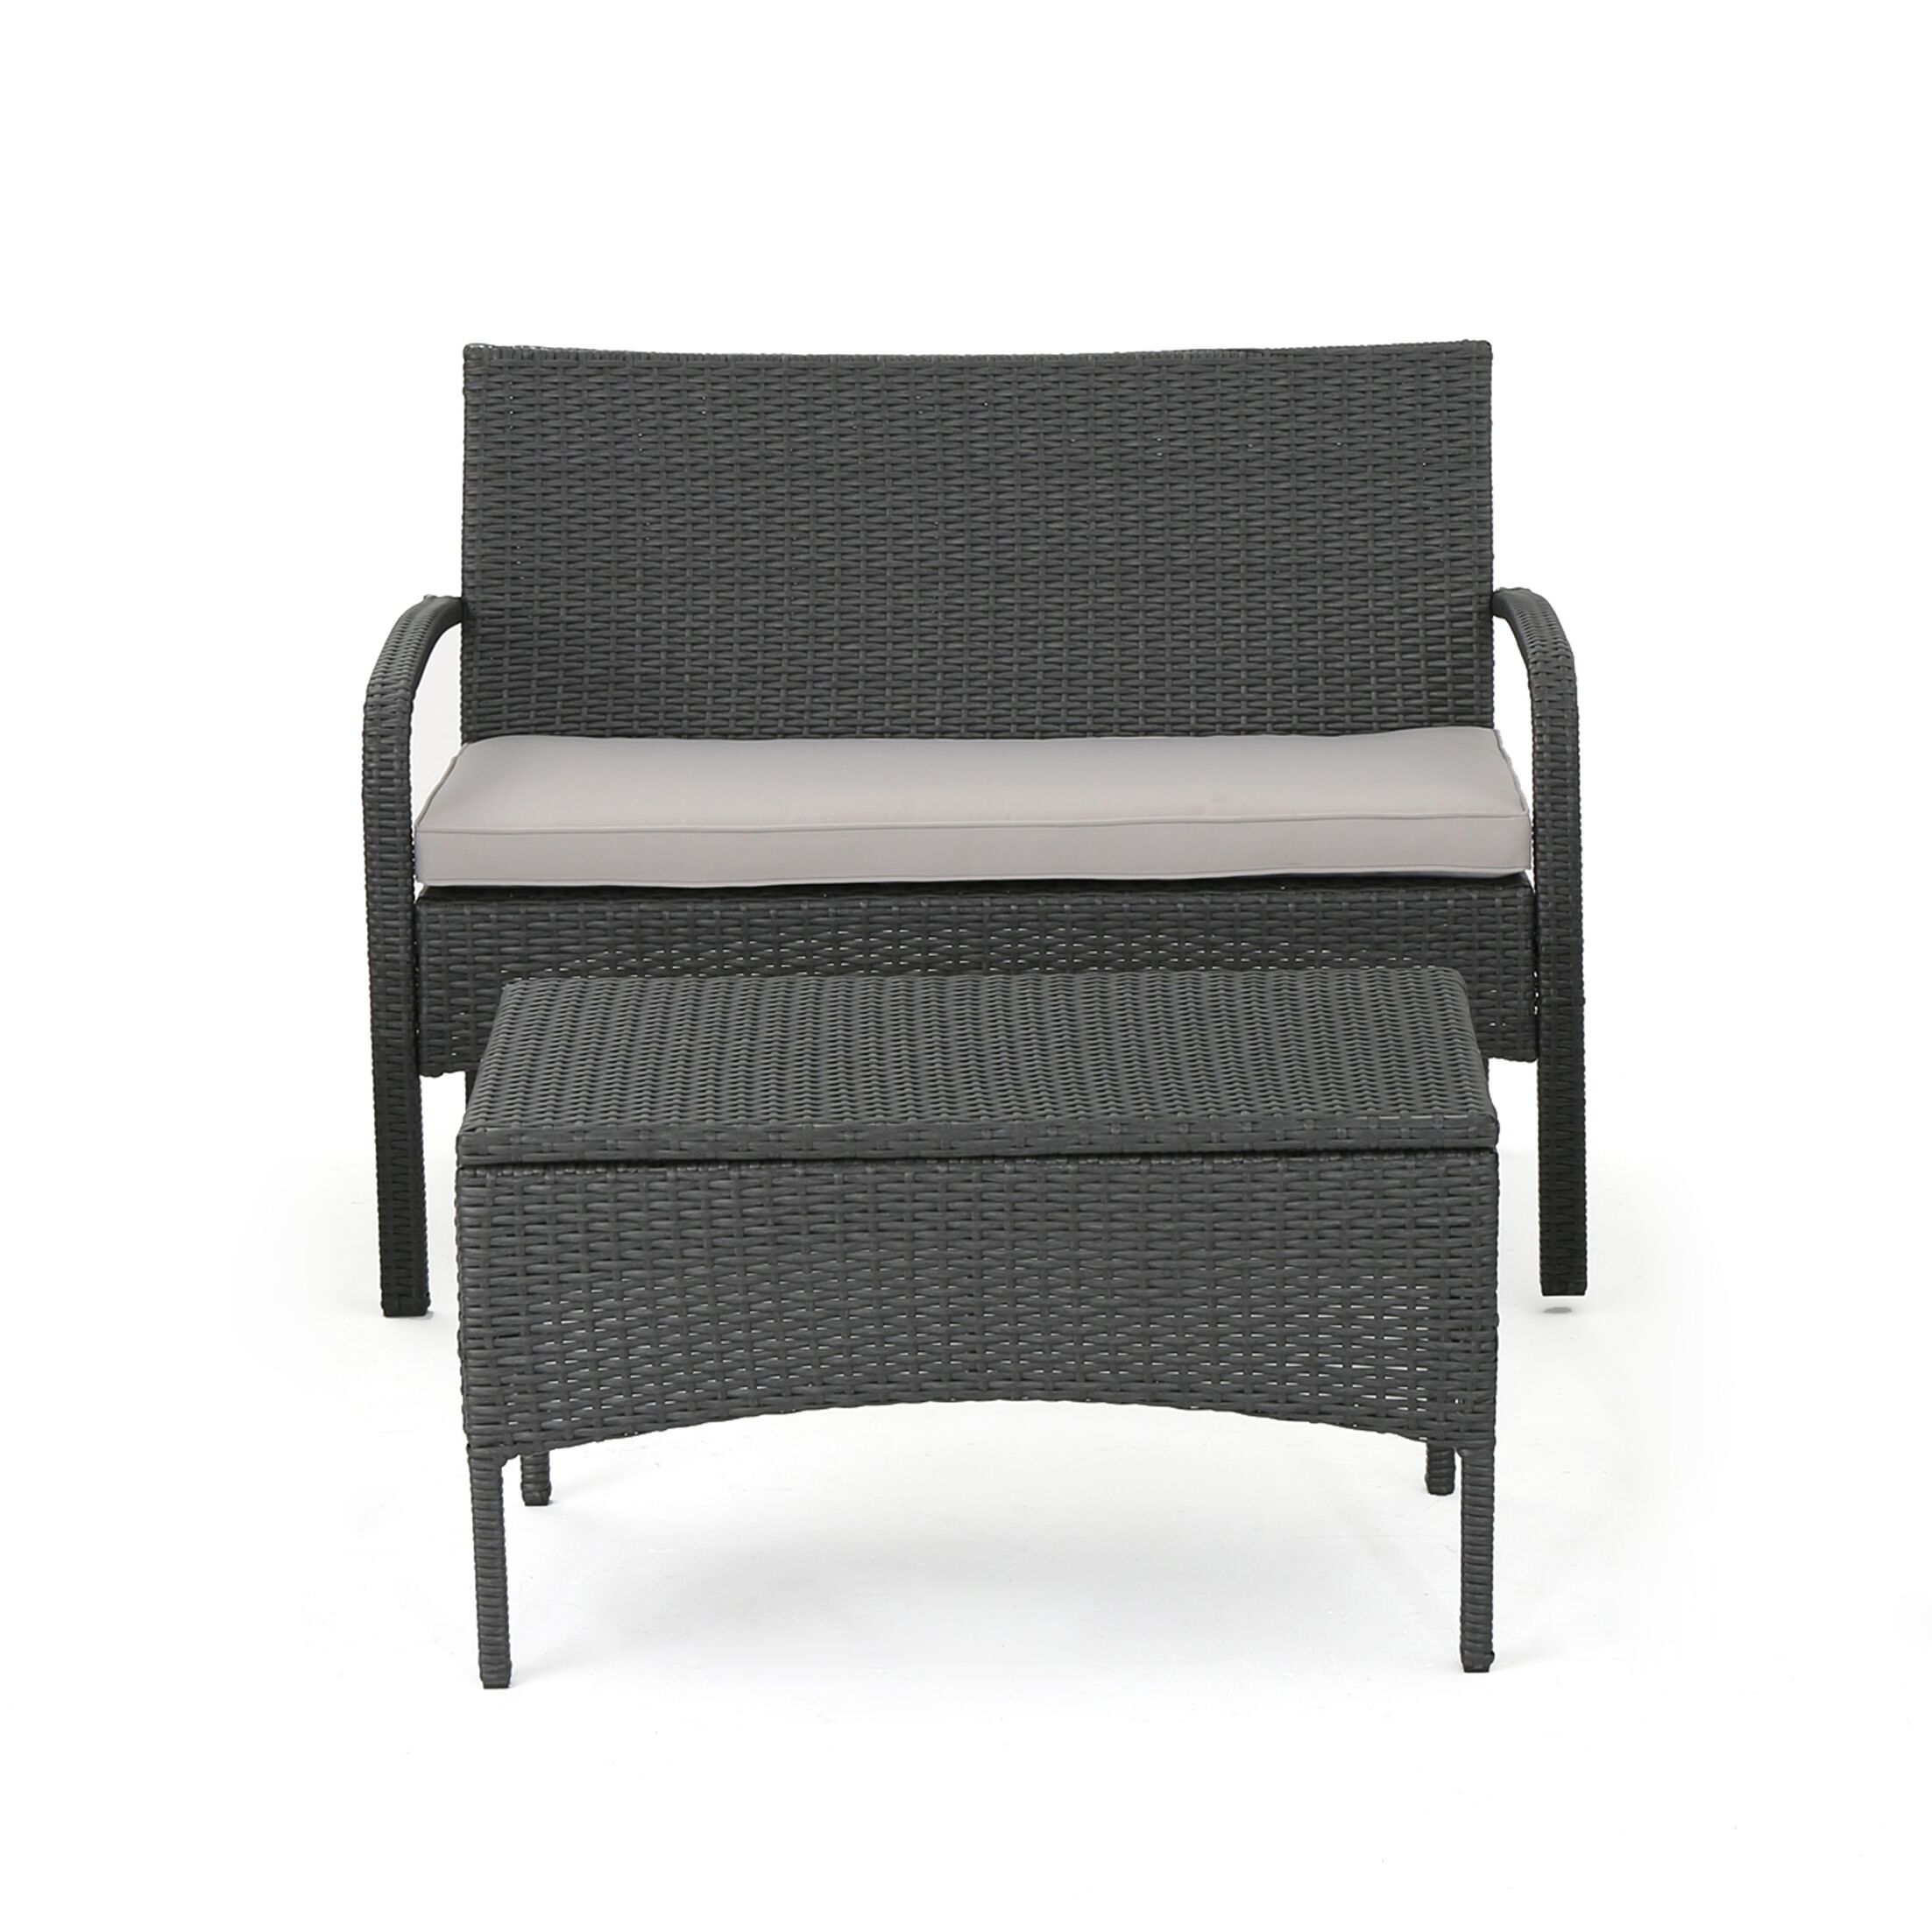 Deeanna Outdoor 2 Piece Rattan Sofa Seating Group with Cushions Frame Finish: Gray, Cushion Color: Silver